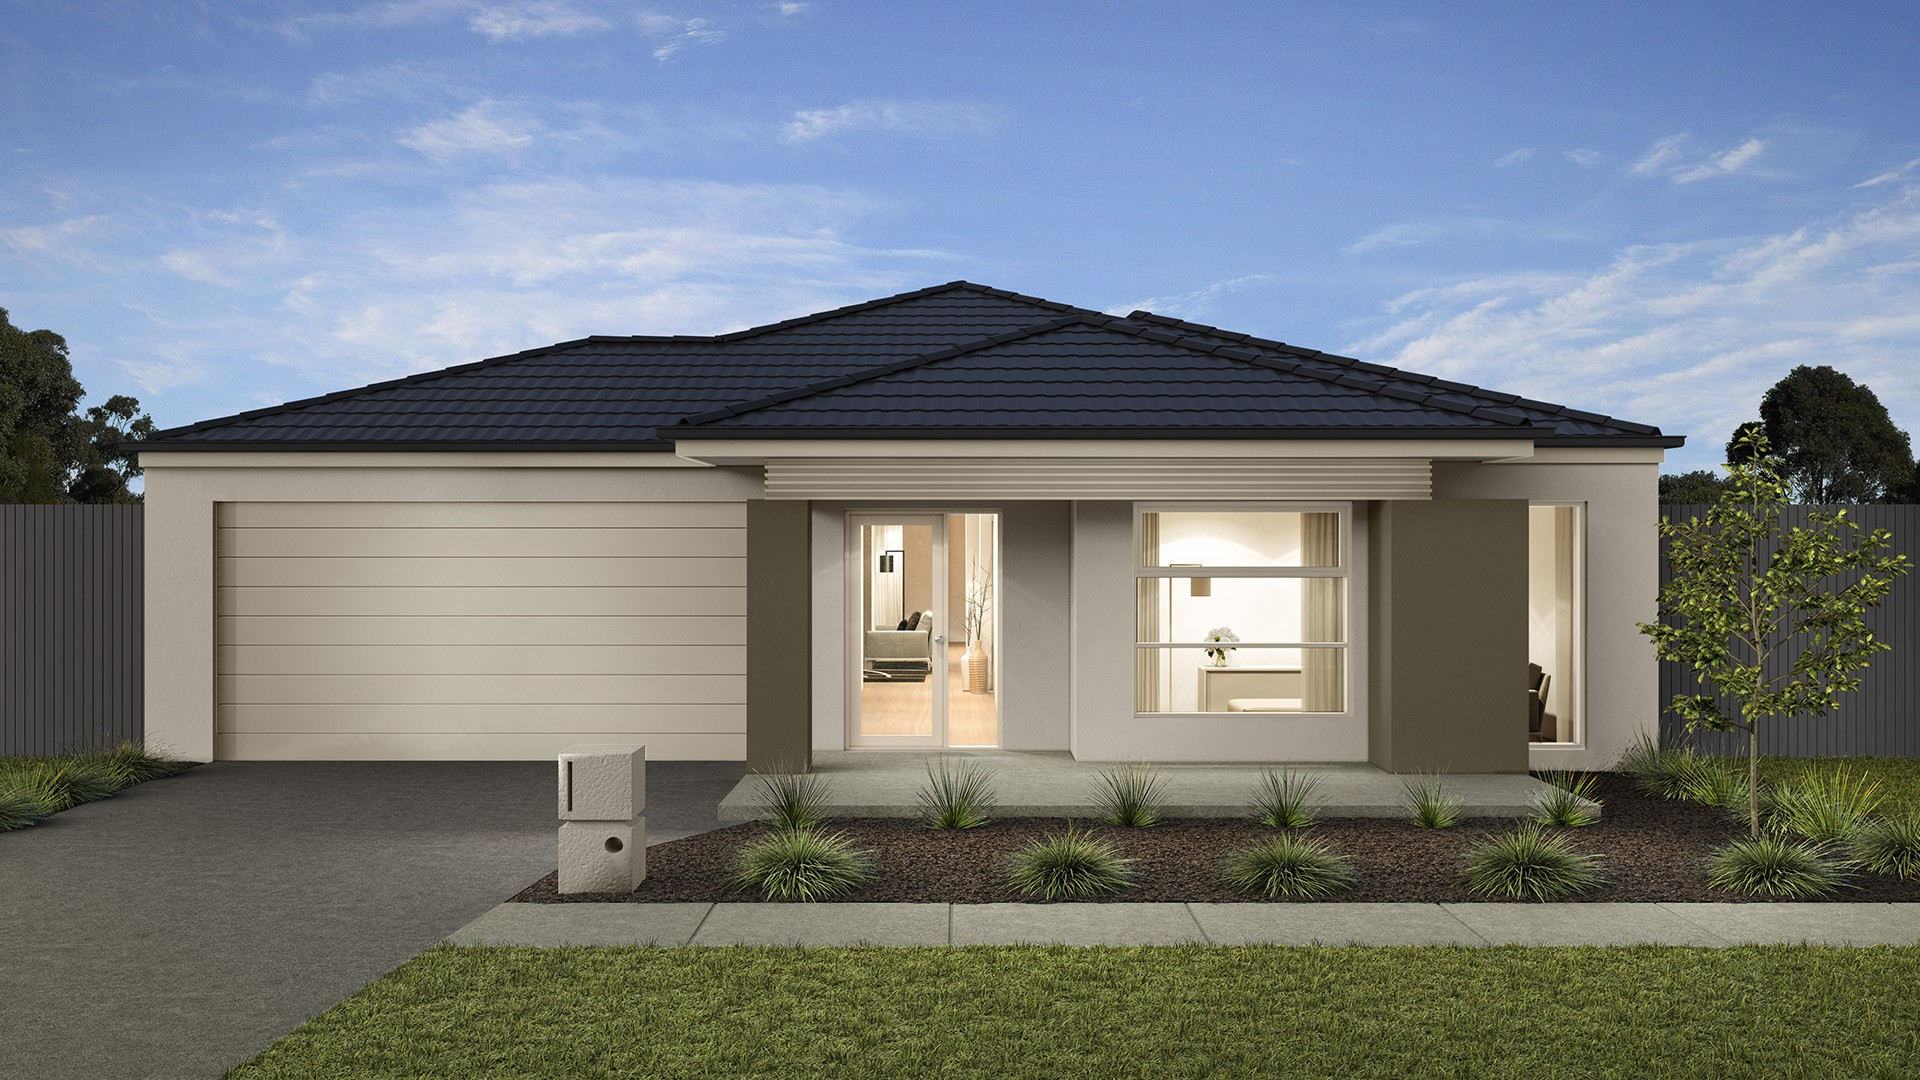 EASYLIVING LISMORE HEBEL NAPLES 14 Exterior Image 1